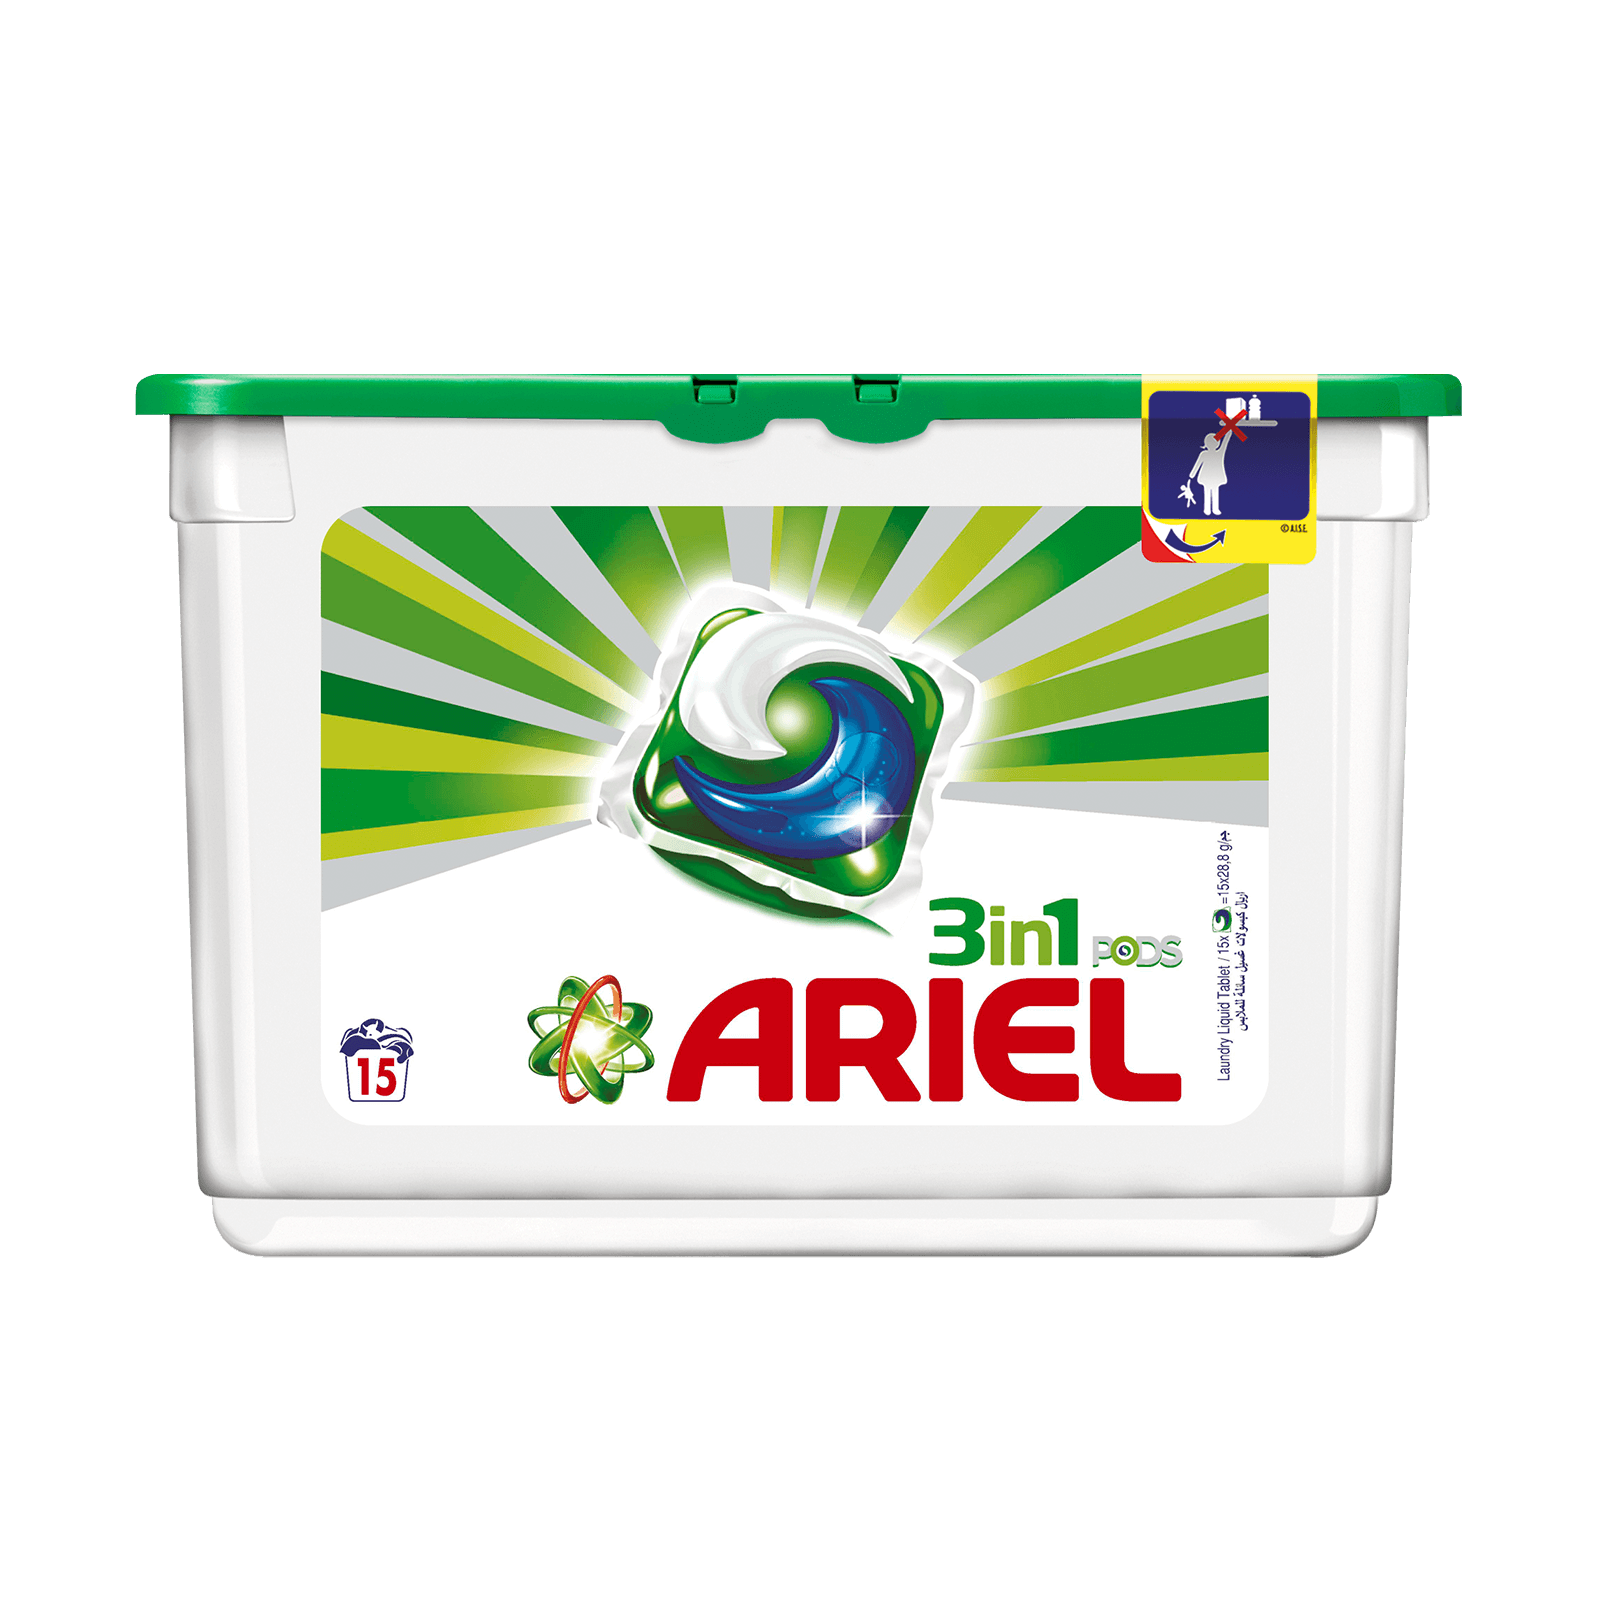 Ariel Automatic Washing 3in1 PODS Detergent Original Perfume 16cts